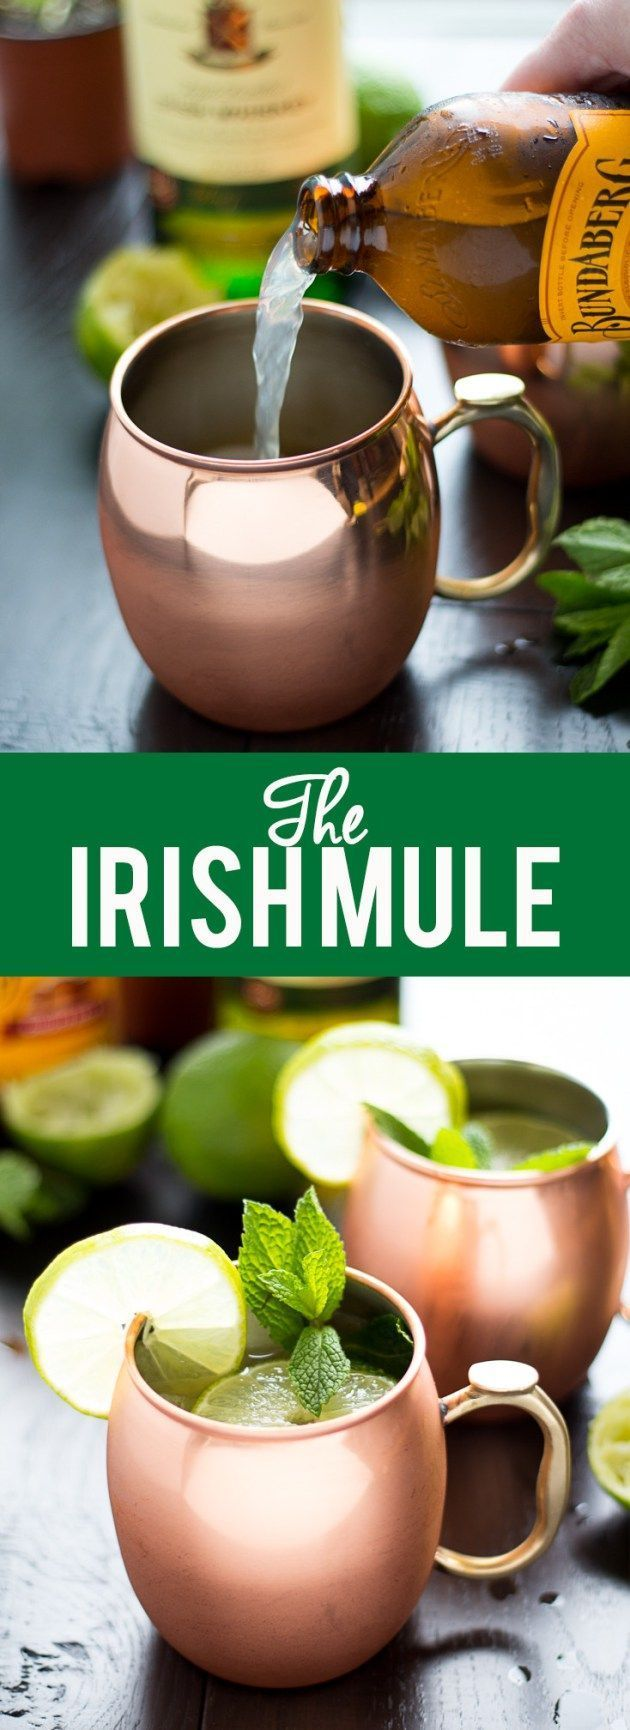 The Irish Mule is a refreshing cocktail made with ginger beer, lime juice and whiskey. Enjoy this on Saint Patrick's Day or any time of year!